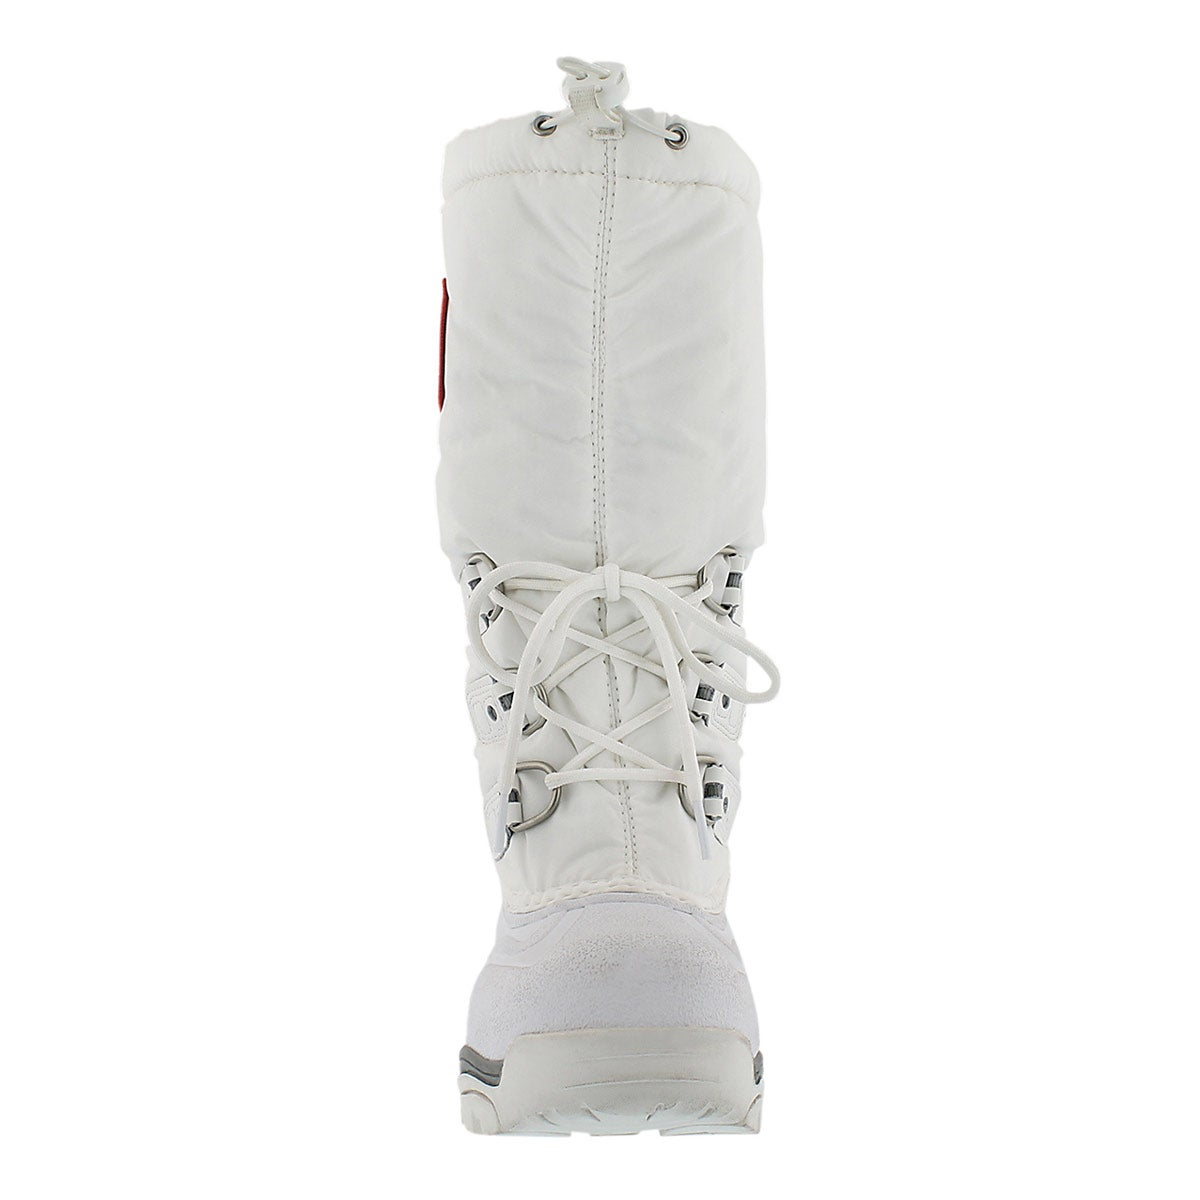 Lds Snowlion XT wht winter boot